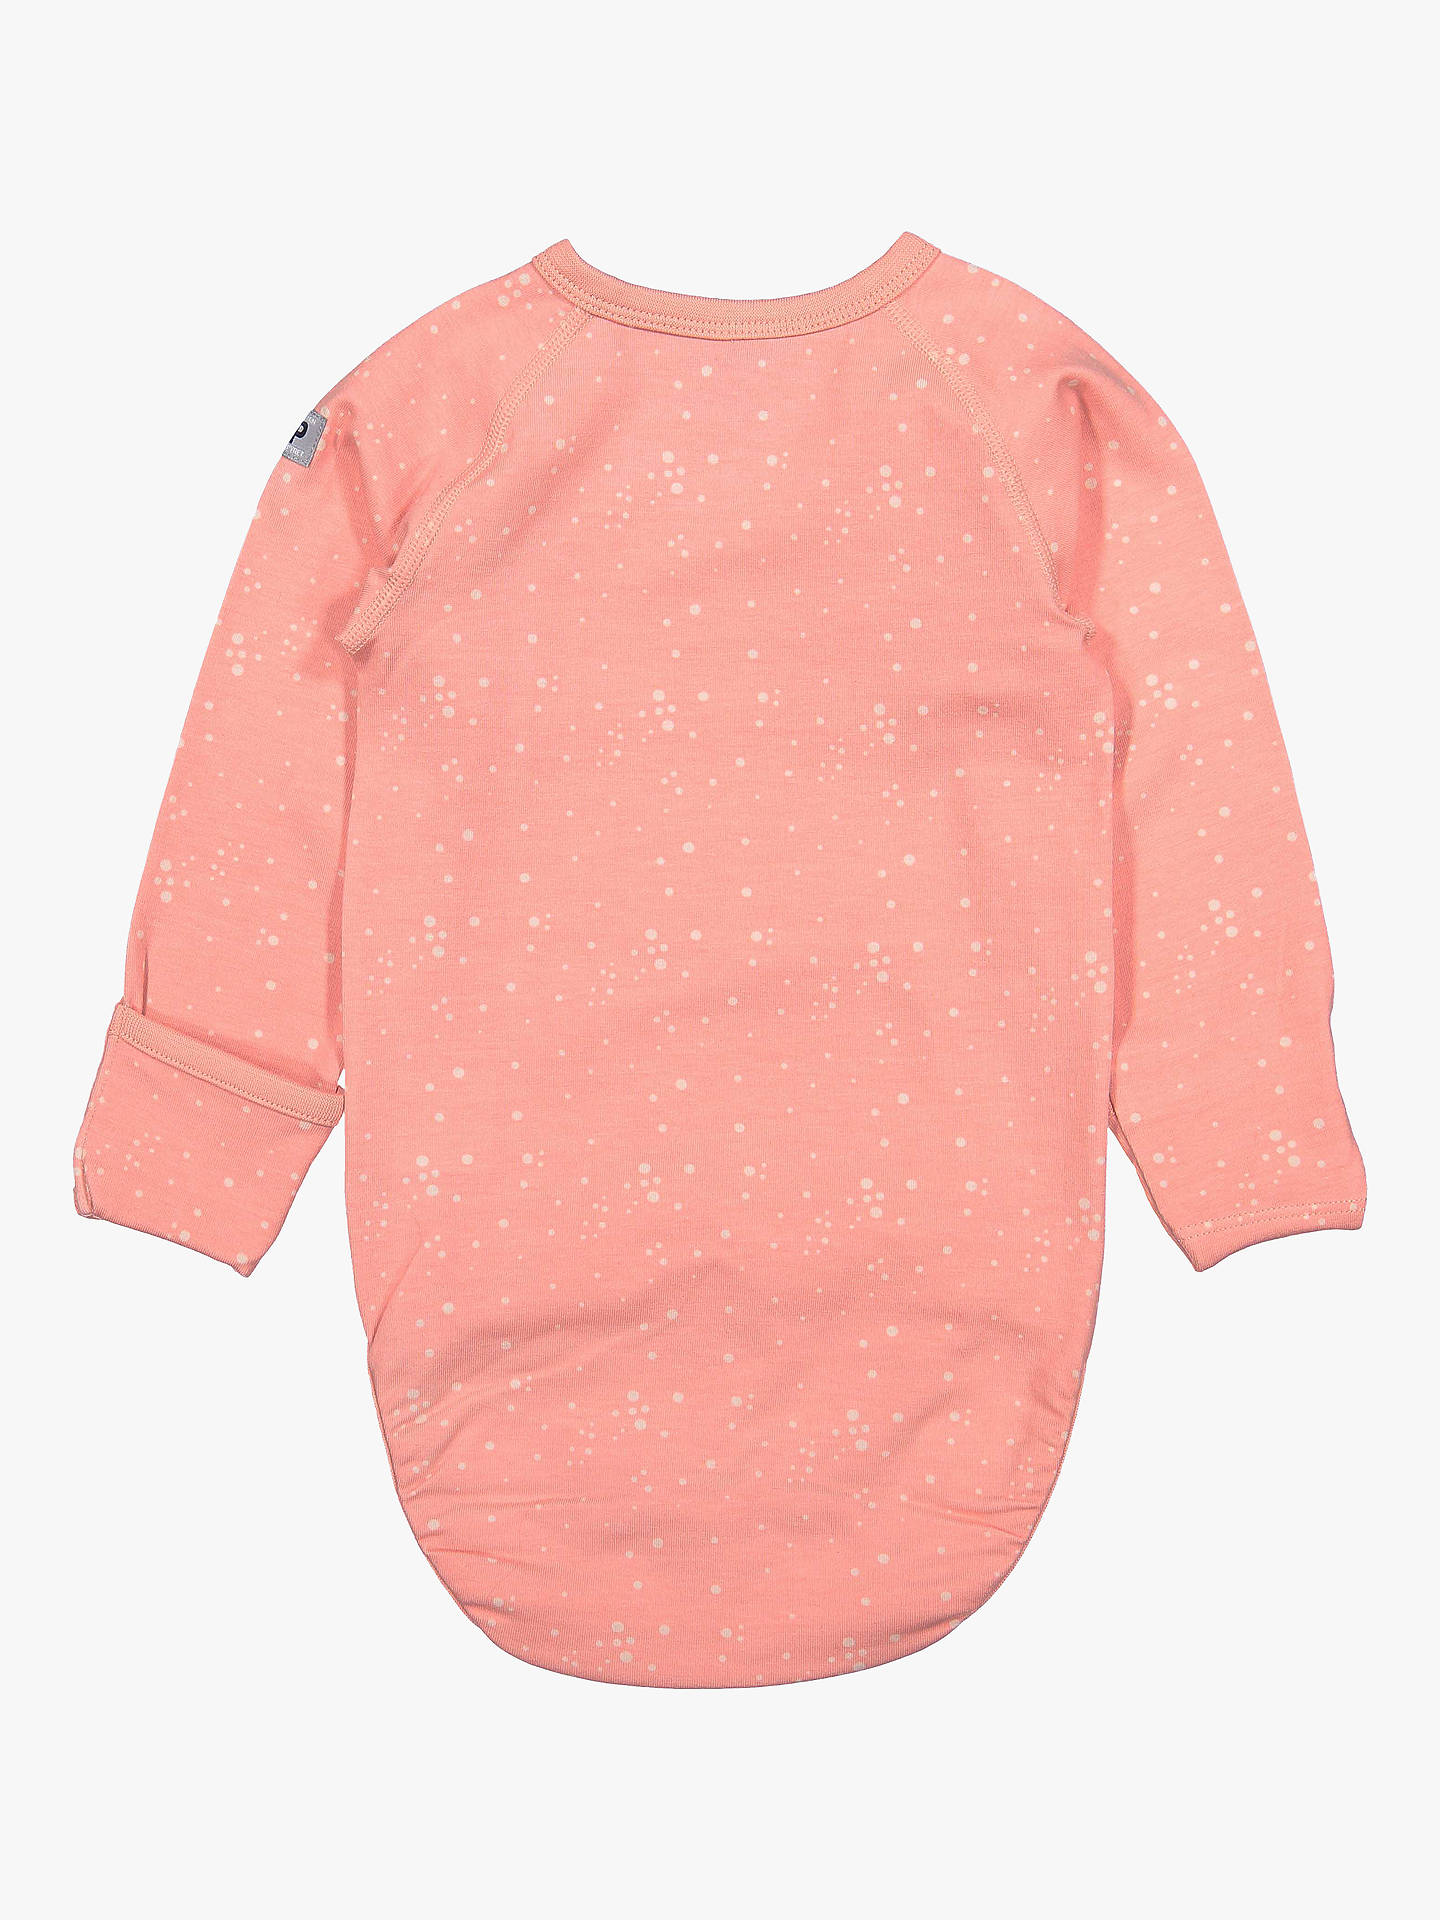 Buy Polarn O. Pyret Baby Bird Bodysuit, Pink, 12-18 months Online at johnlewis.com